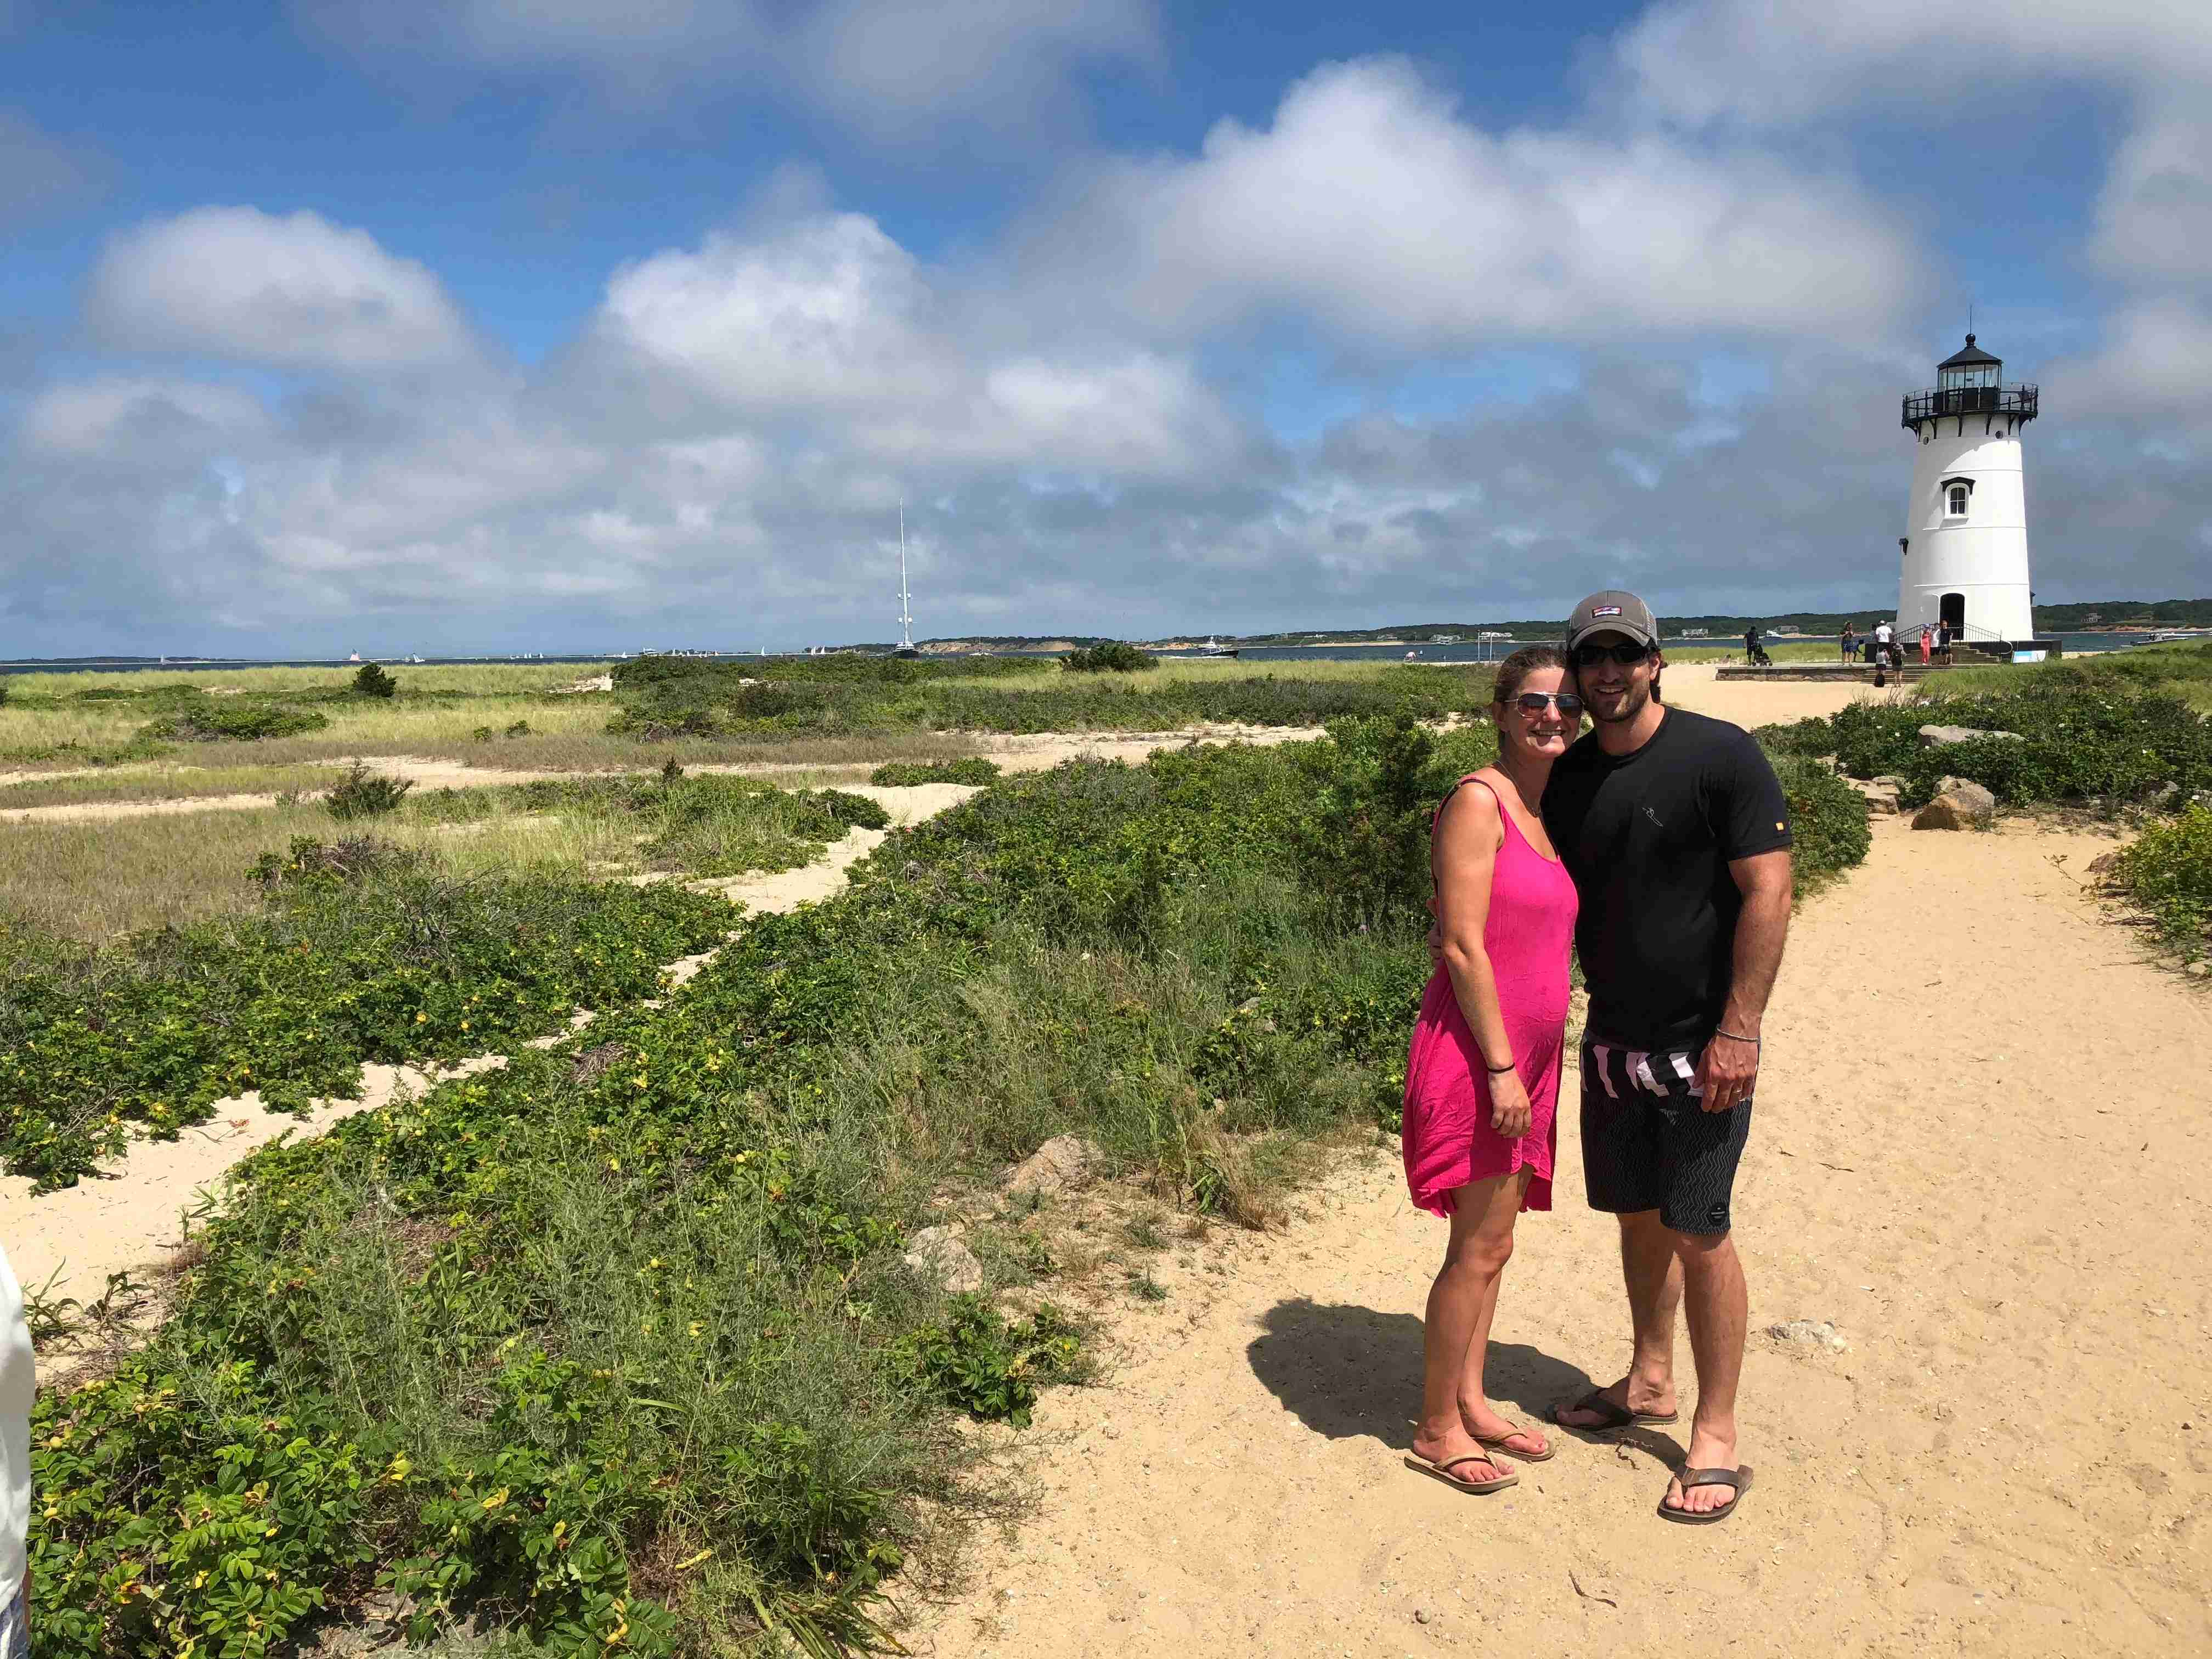 Explore downtown Edgartown or the beaches by foot or bike (Jennifer Yellin / Deals We Like)